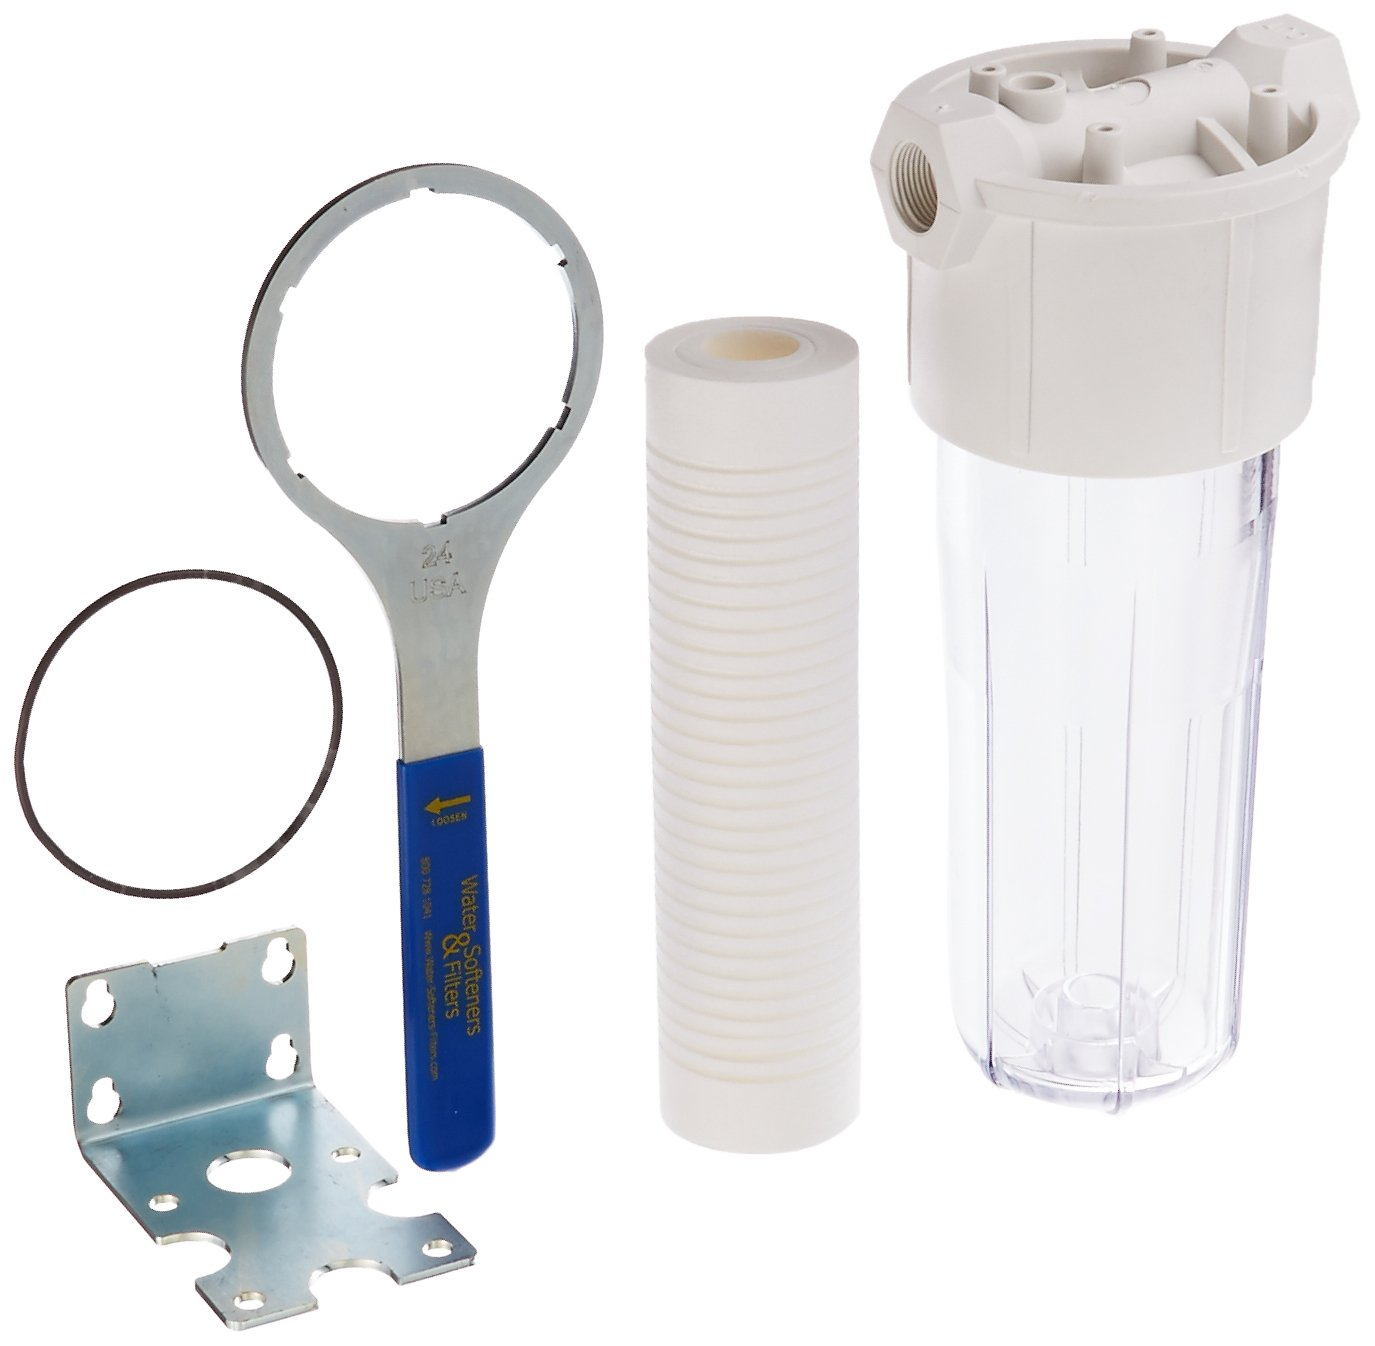 USA Filtration Systems - Whole House Water Filtration System USAWH1 Whole House Water Filtration System